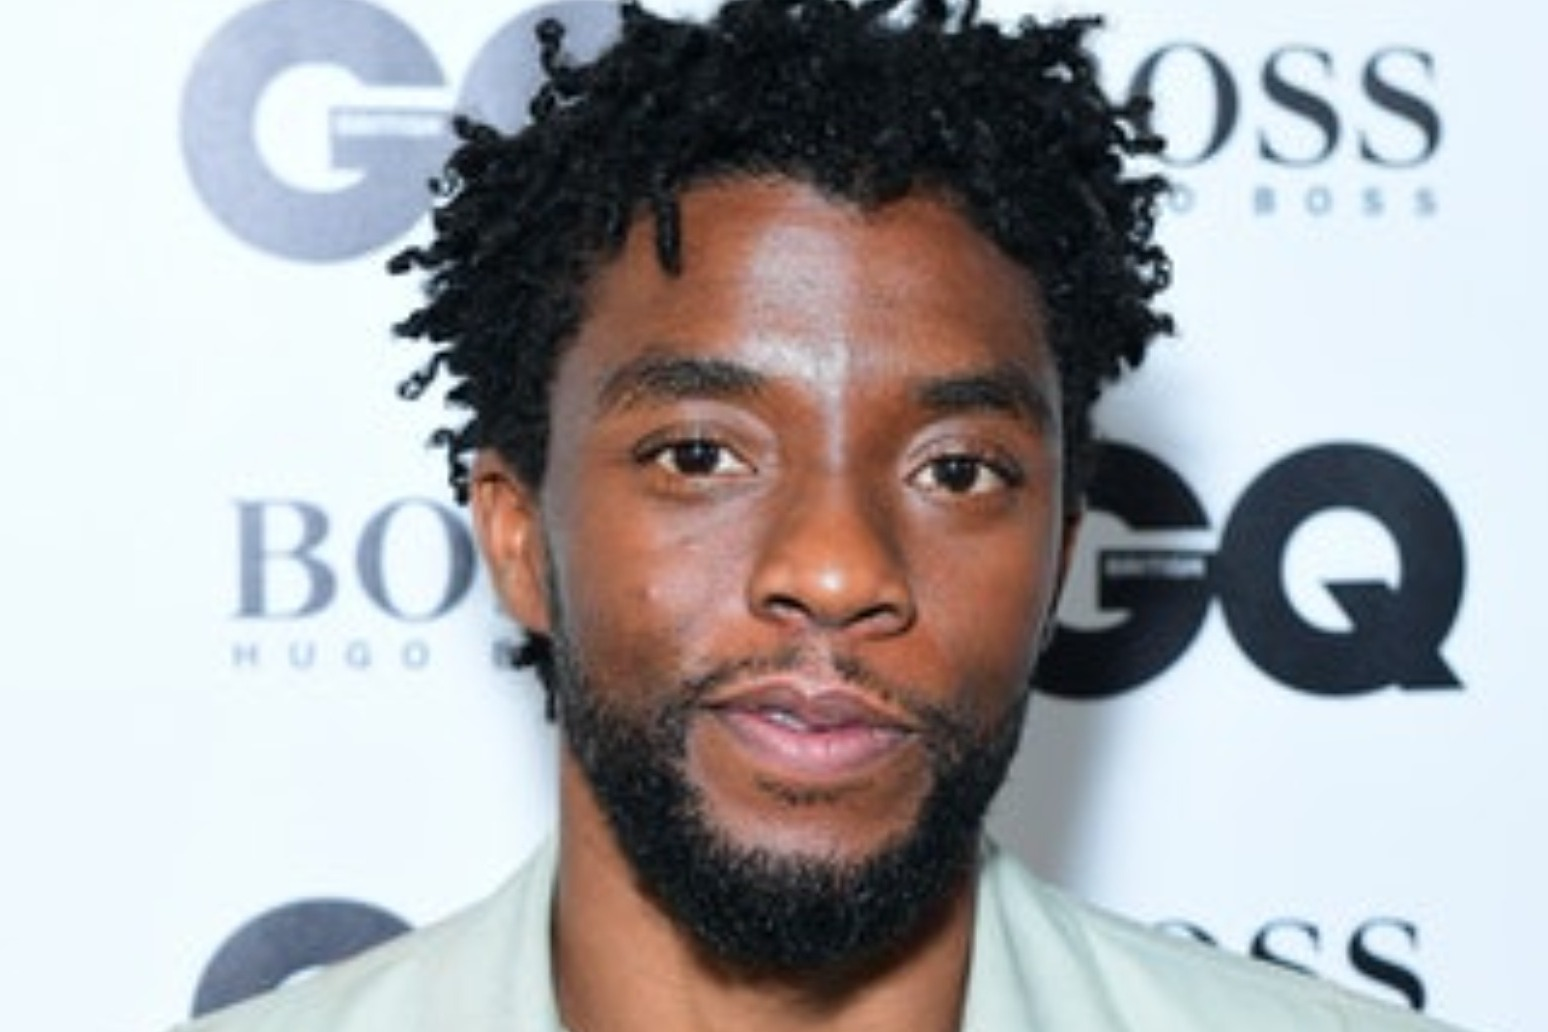 Netflix shares trailer for Chadwick Boseman's final film Ma Rainey's Black Bottom